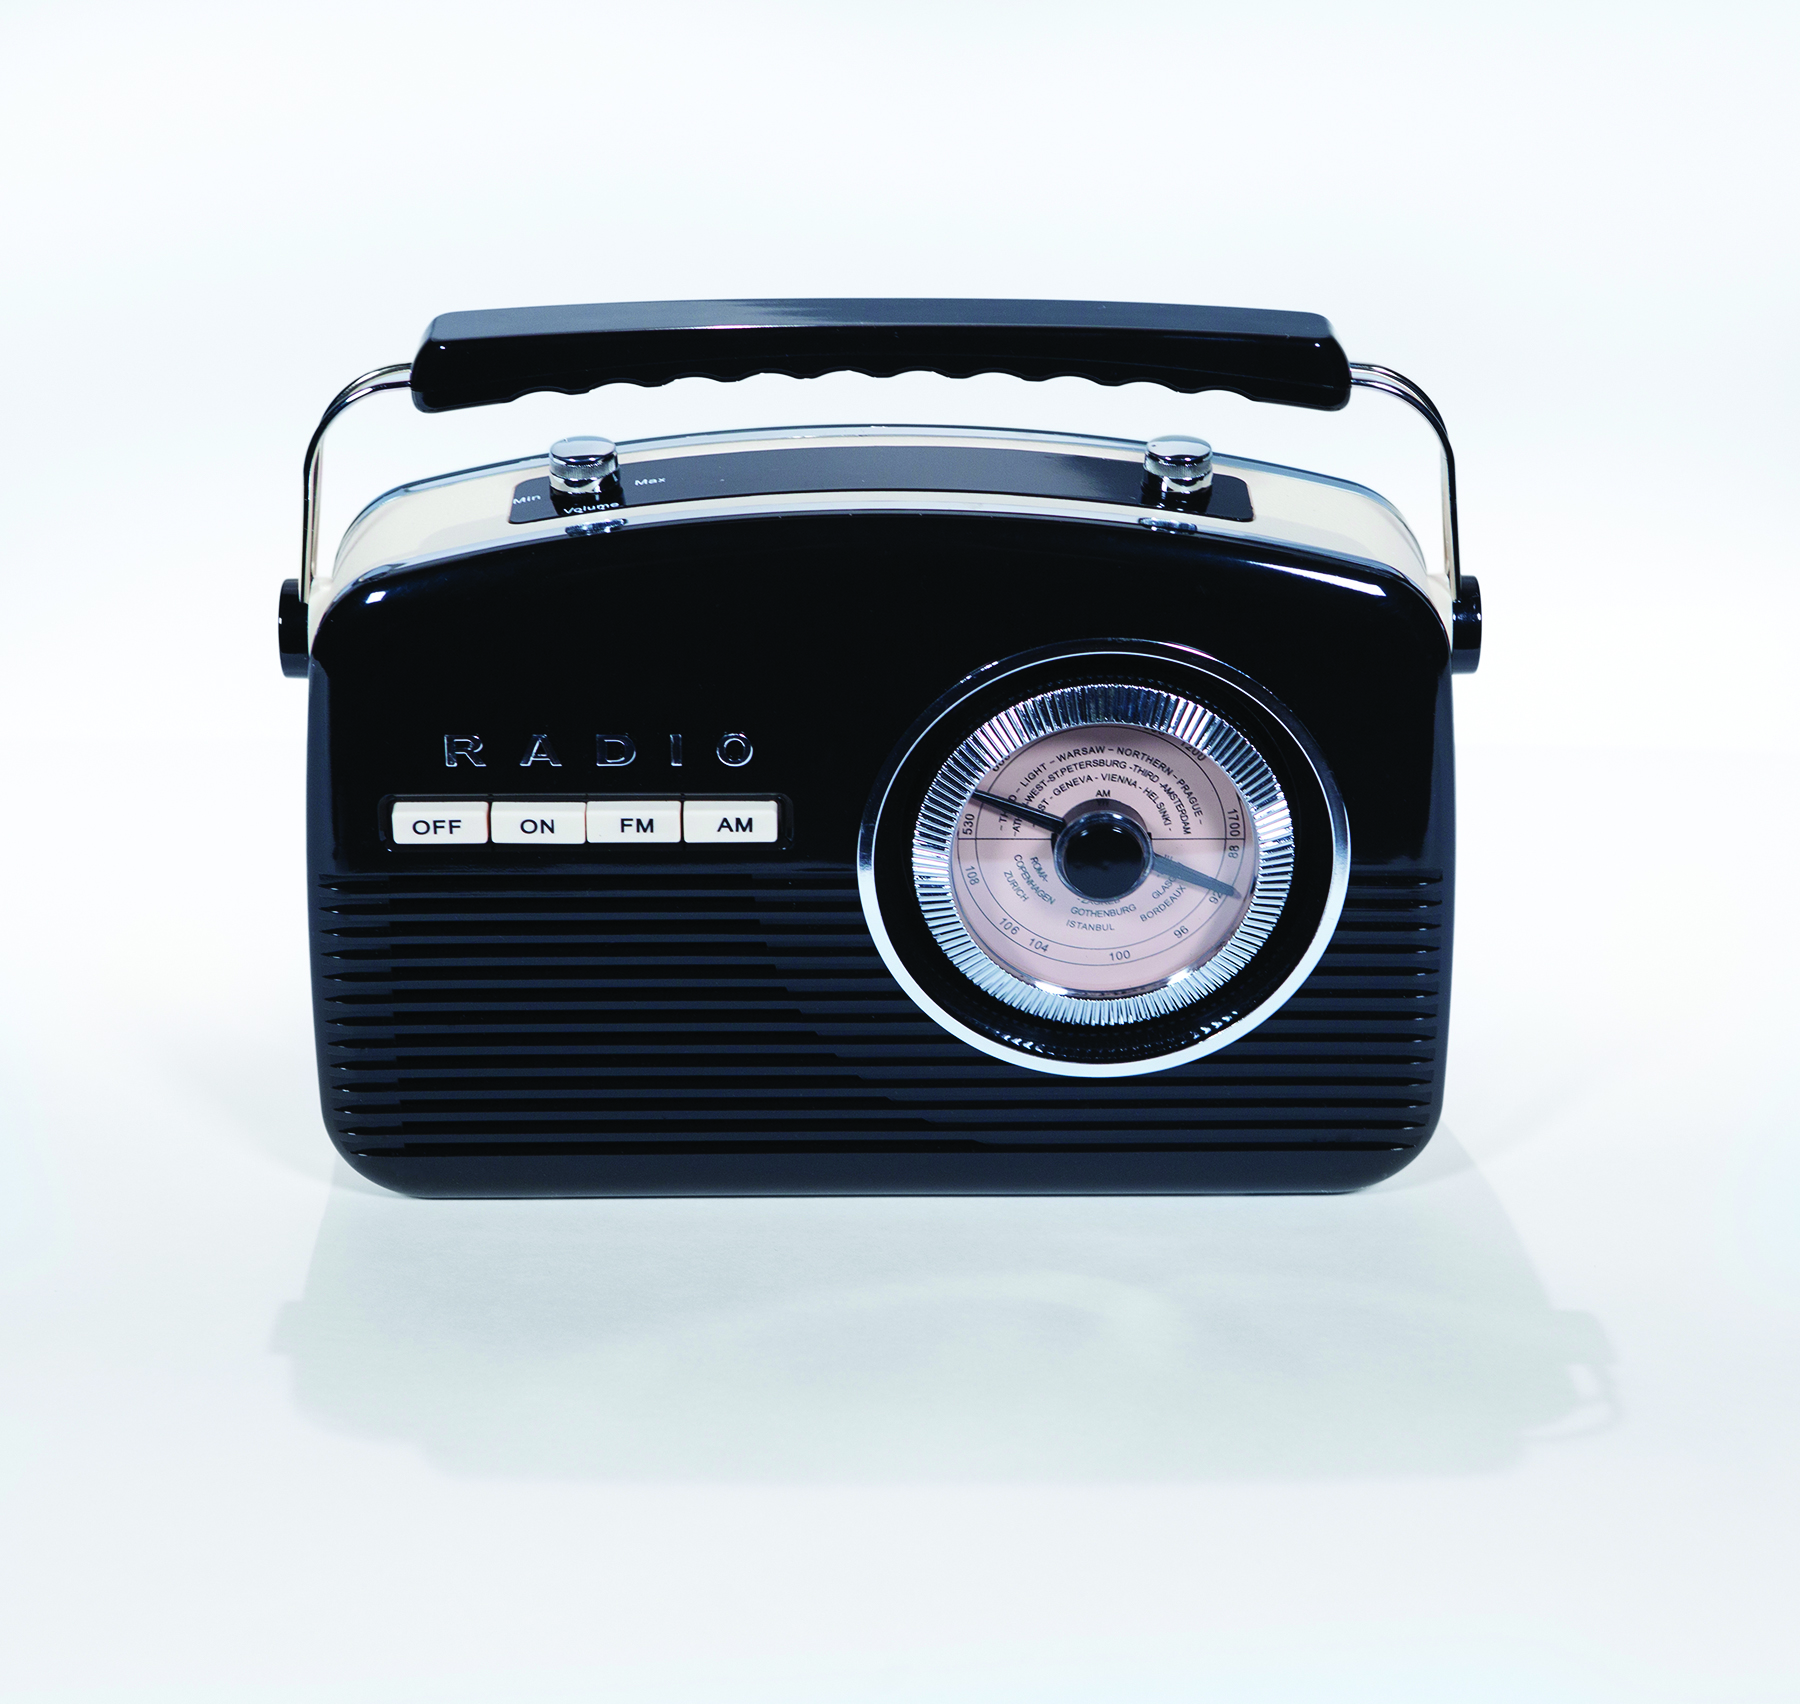 retro stereo am fm radio cd player 2013 holiday gift. Black Bedroom Furniture Sets. Home Design Ideas